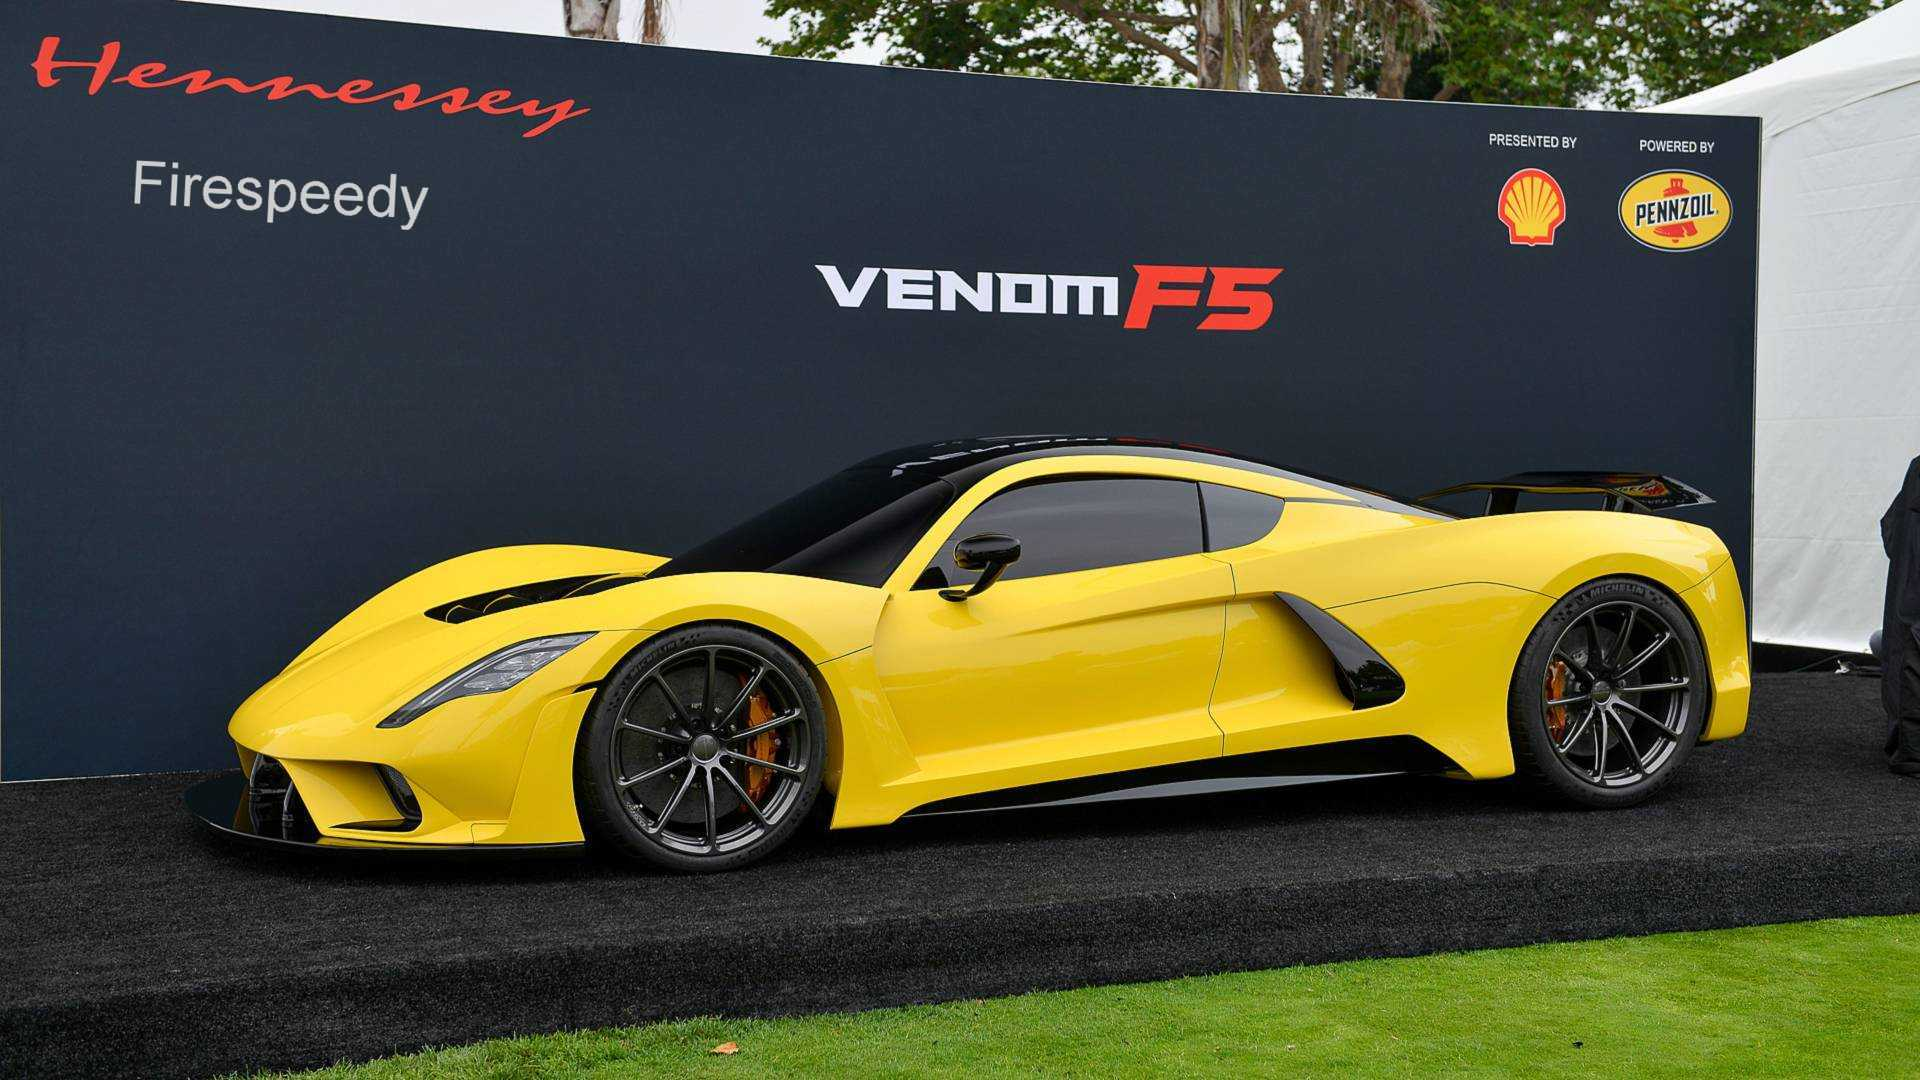 Hennessey Venom F5 | Second Fastest Car in the world 2020